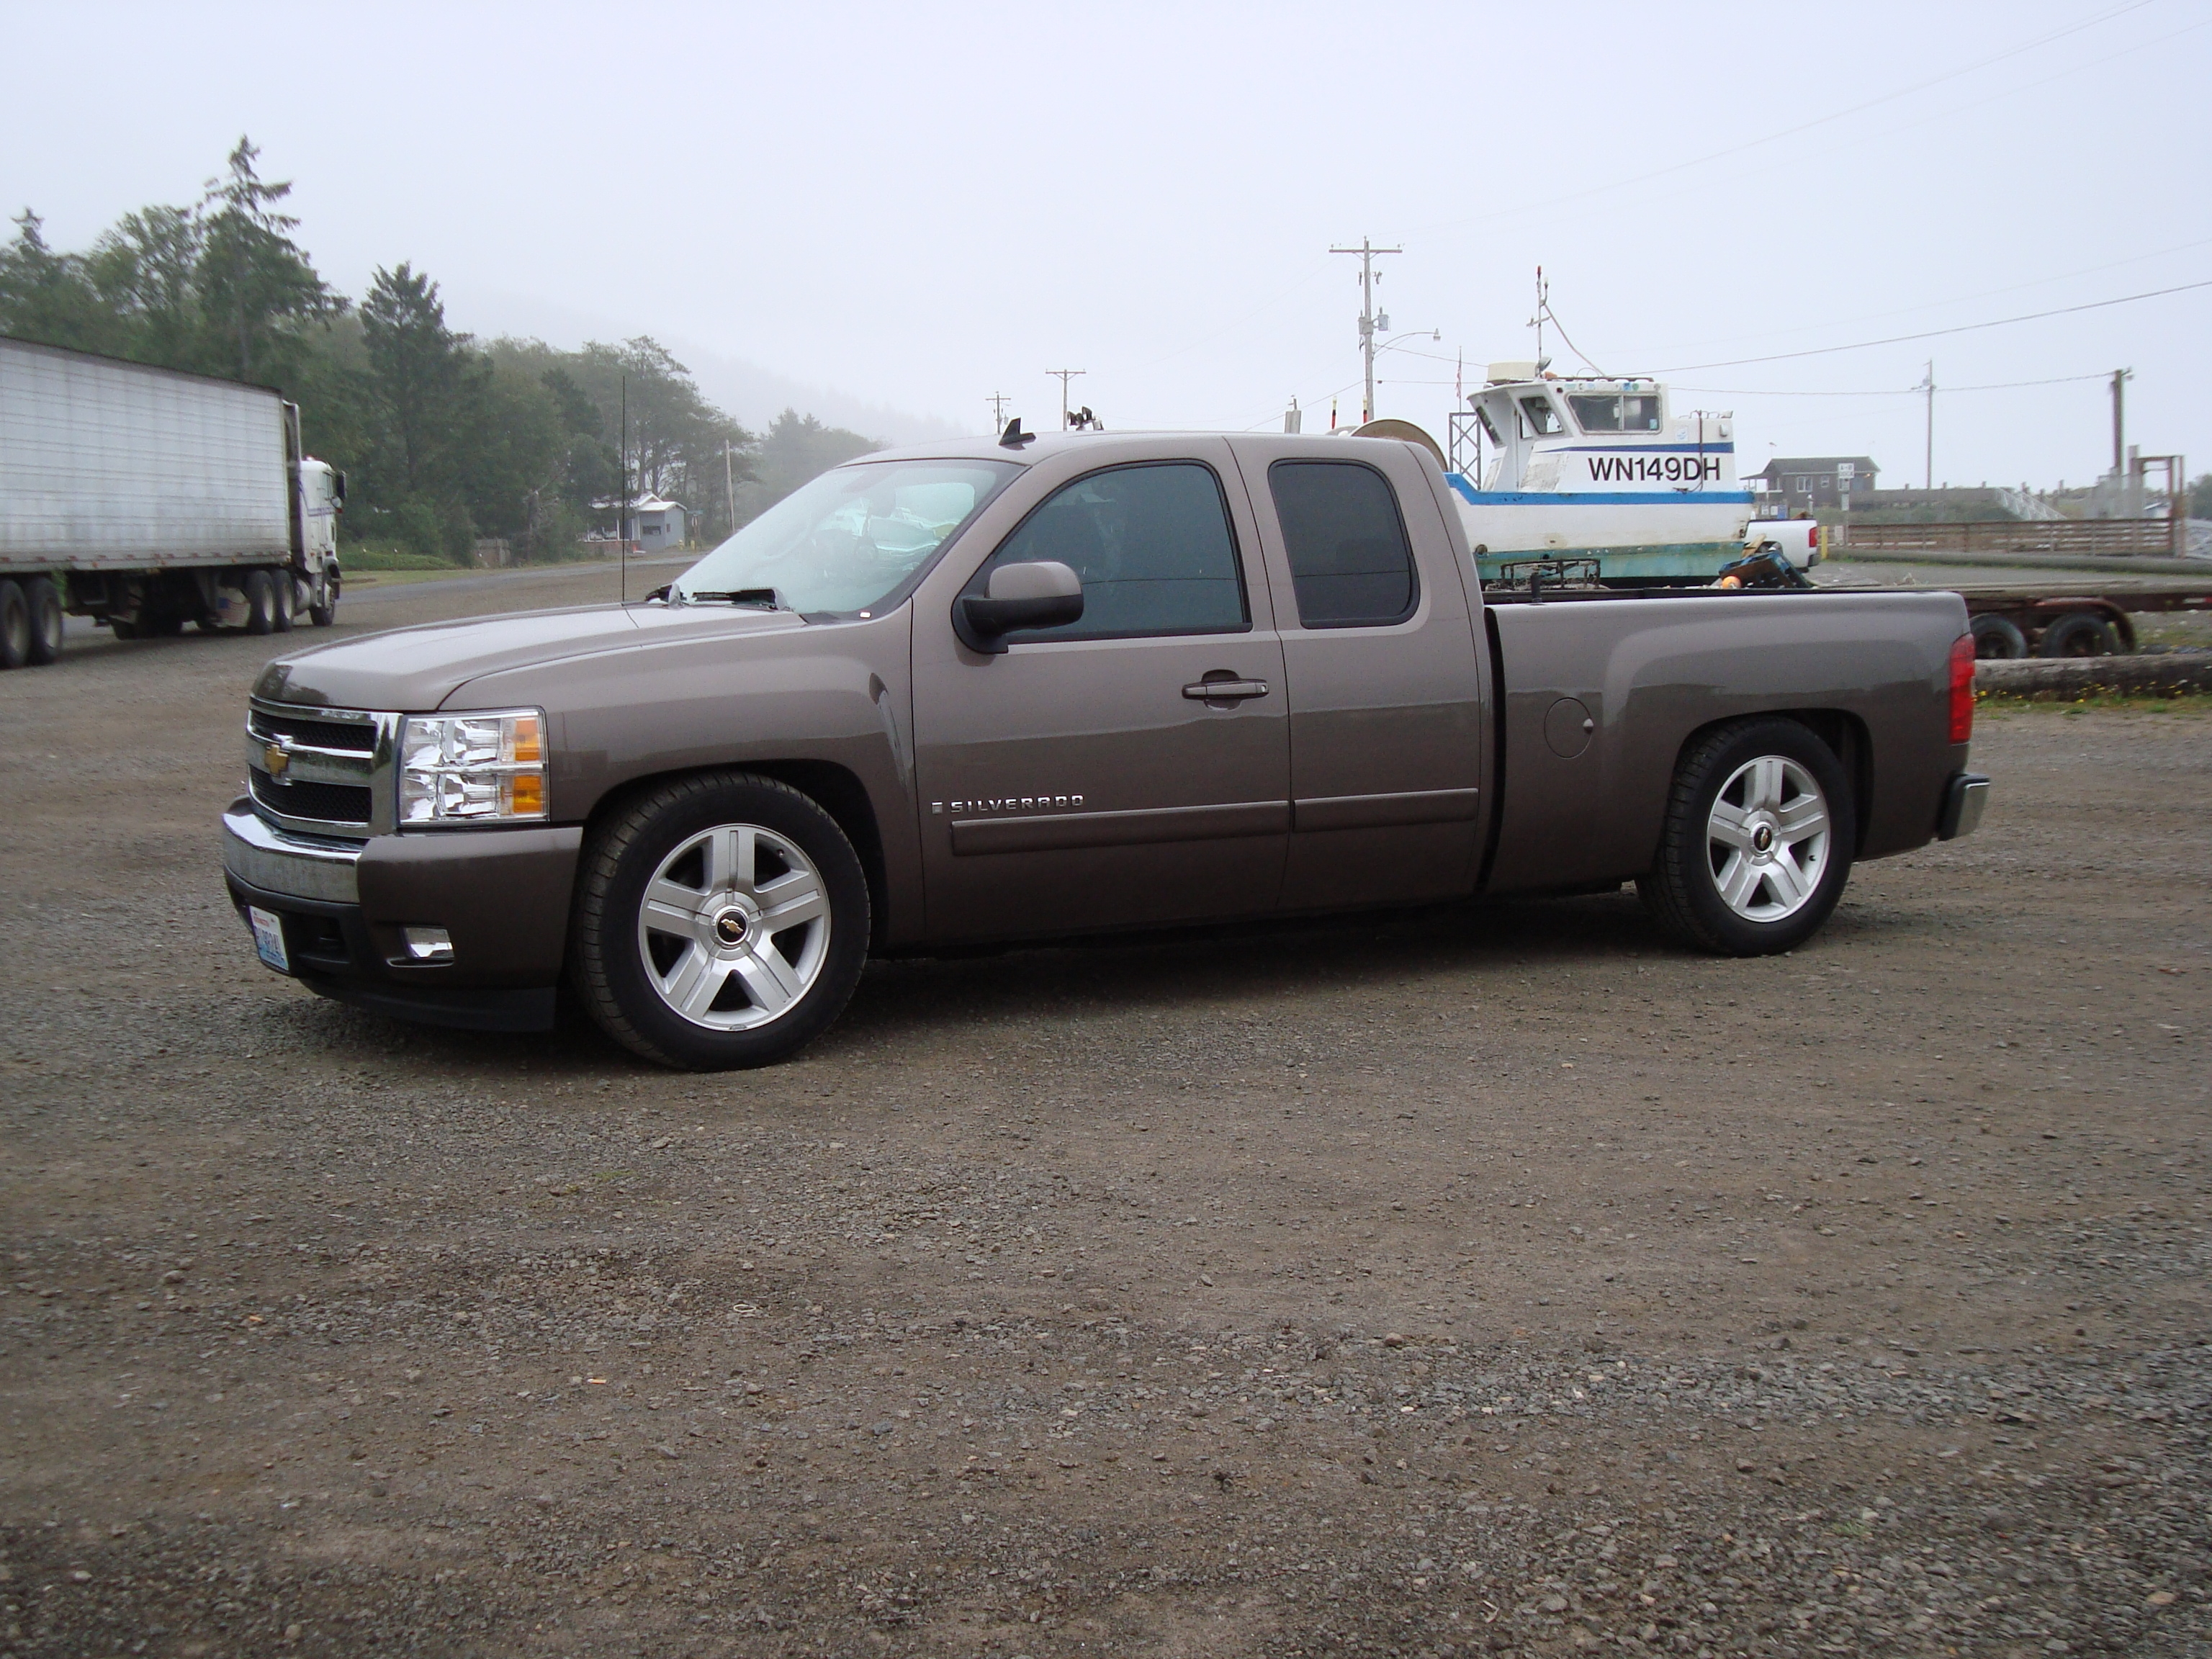 2005 chevy silverado lowered pictures to pin on pinterest. Black Bedroom Furniture Sets. Home Design Ideas